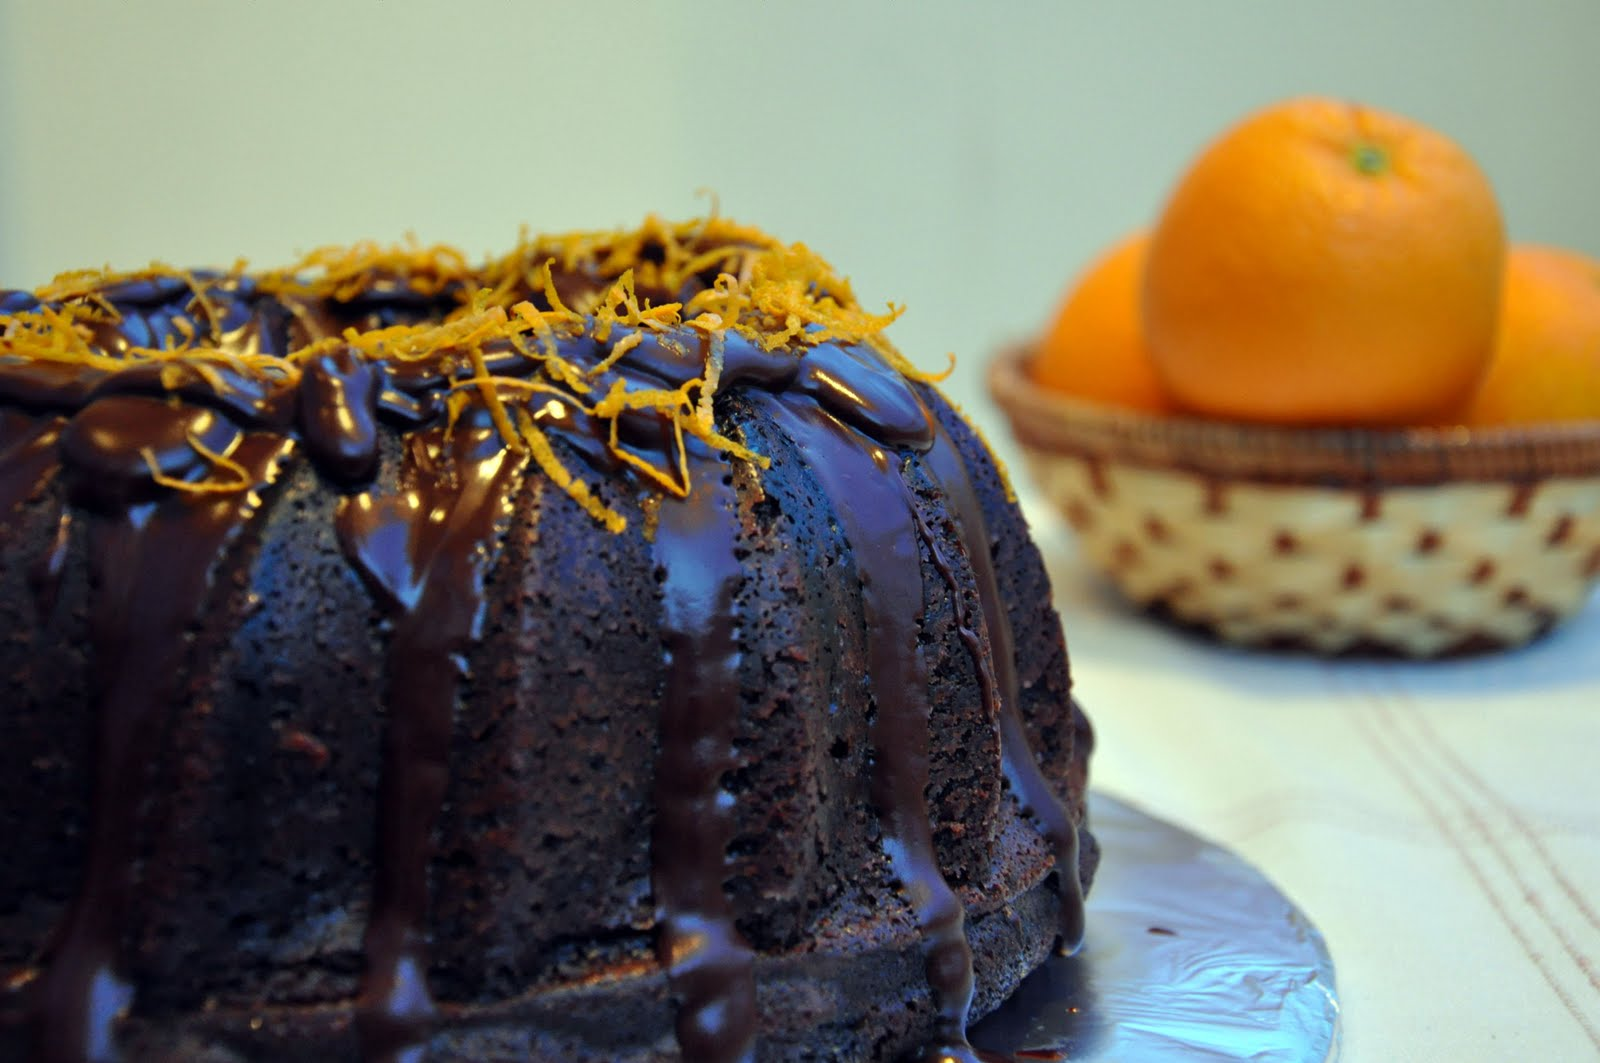 Served with love: Chocolate Orange Bundt Cake